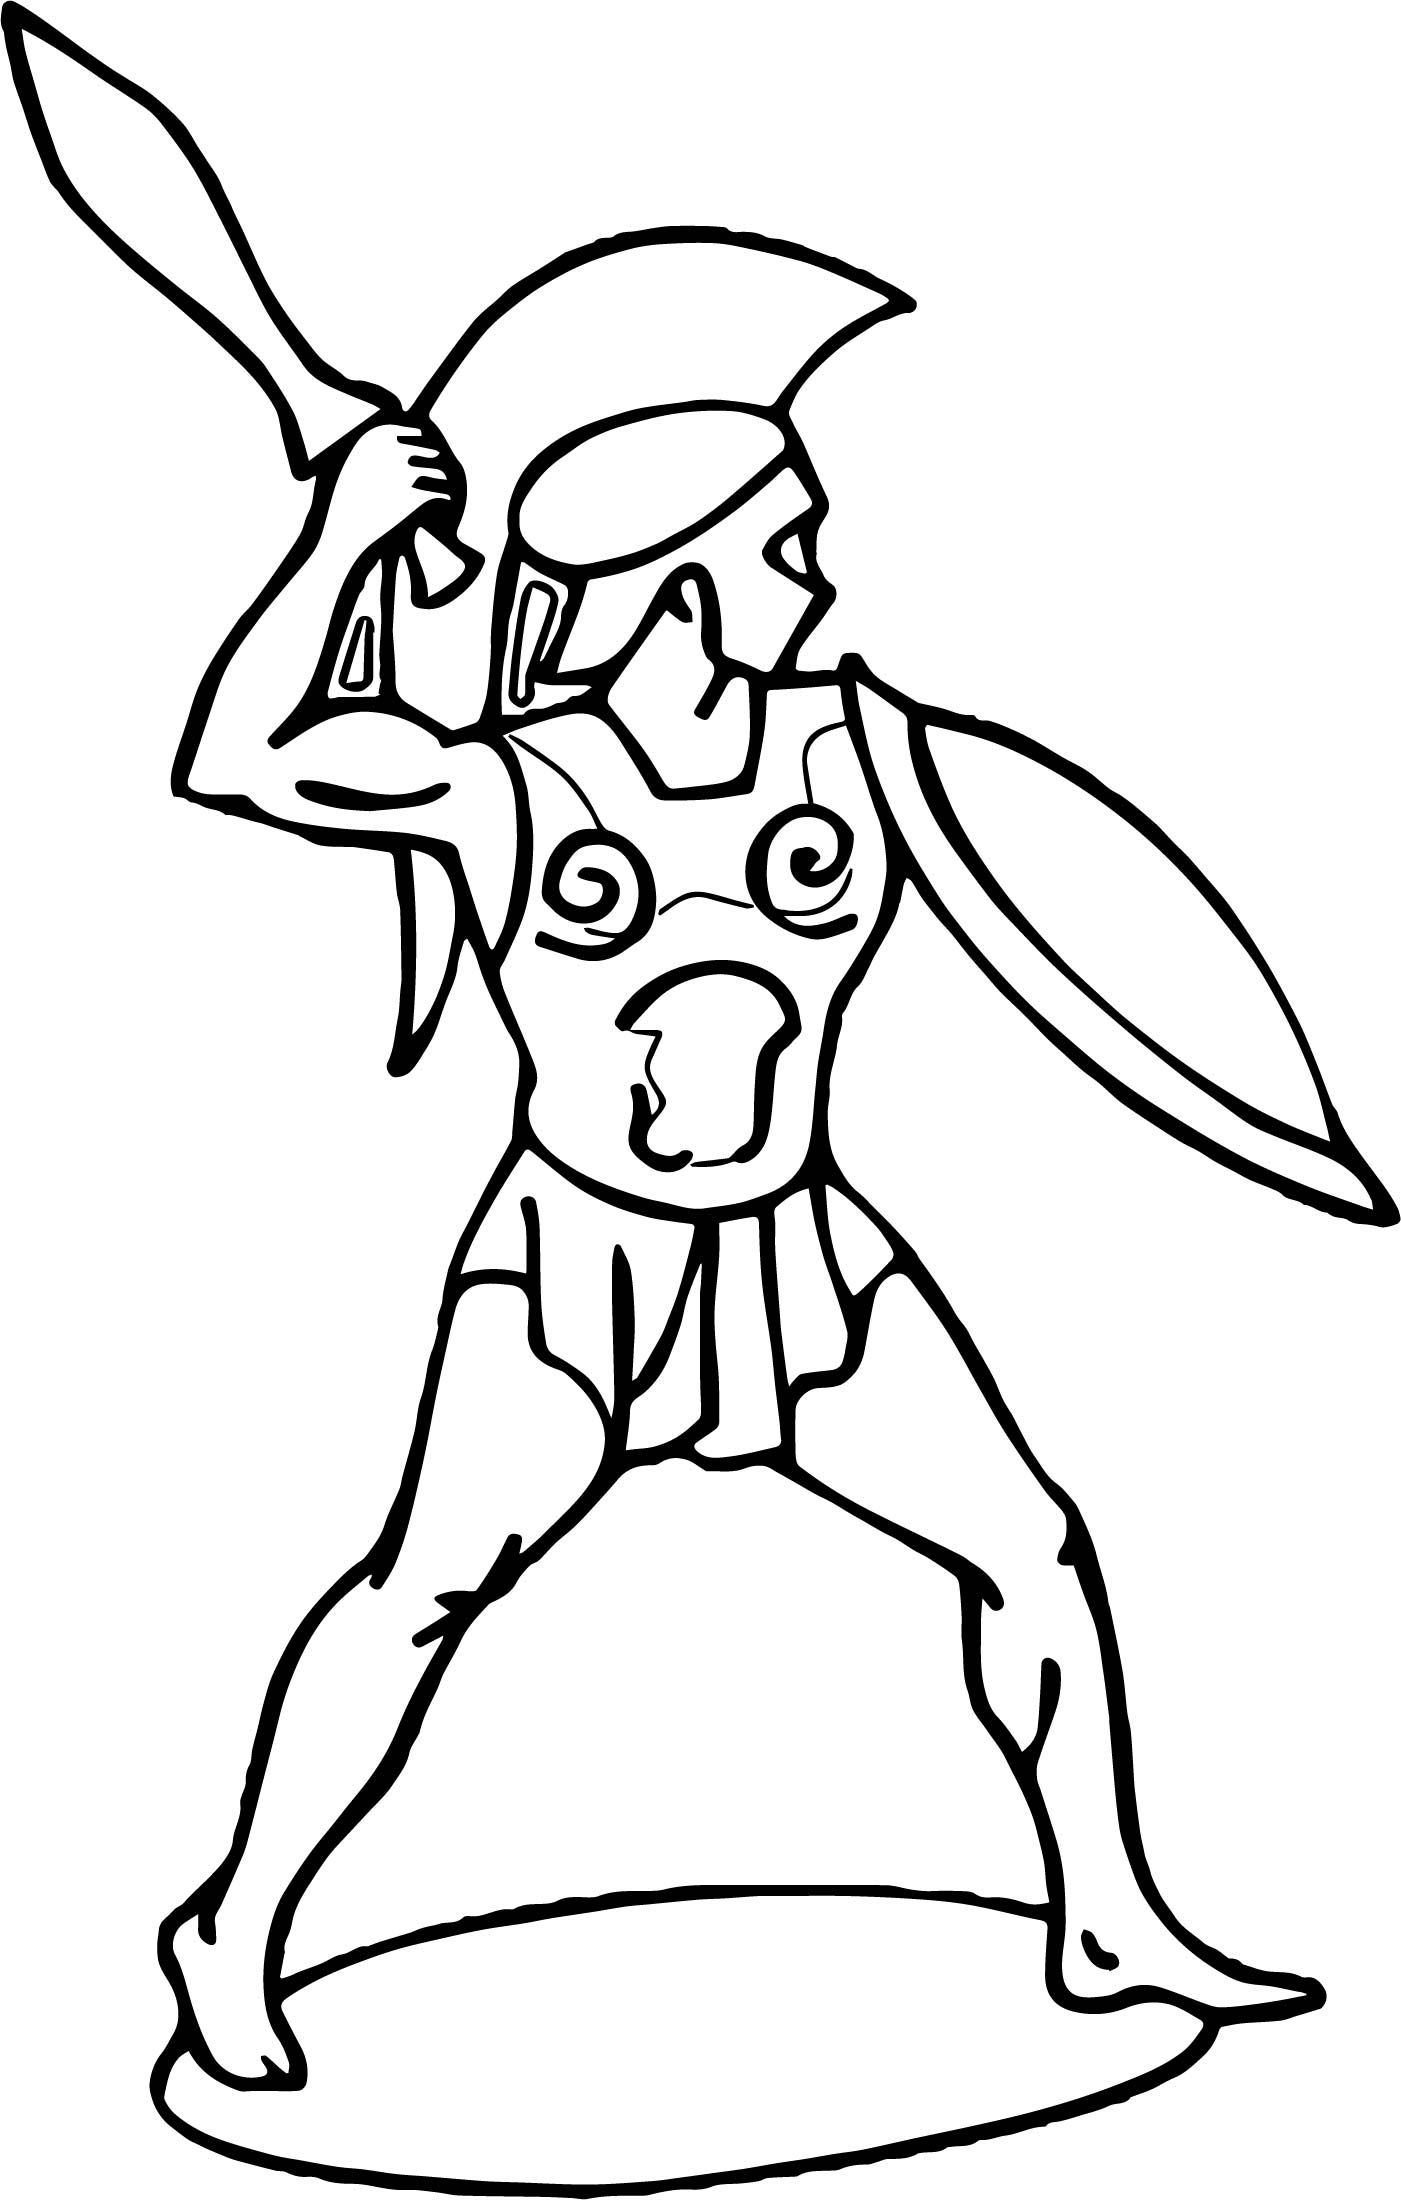 Awesome Roman Soldier Warrior Coloring Page Warrior Drawing